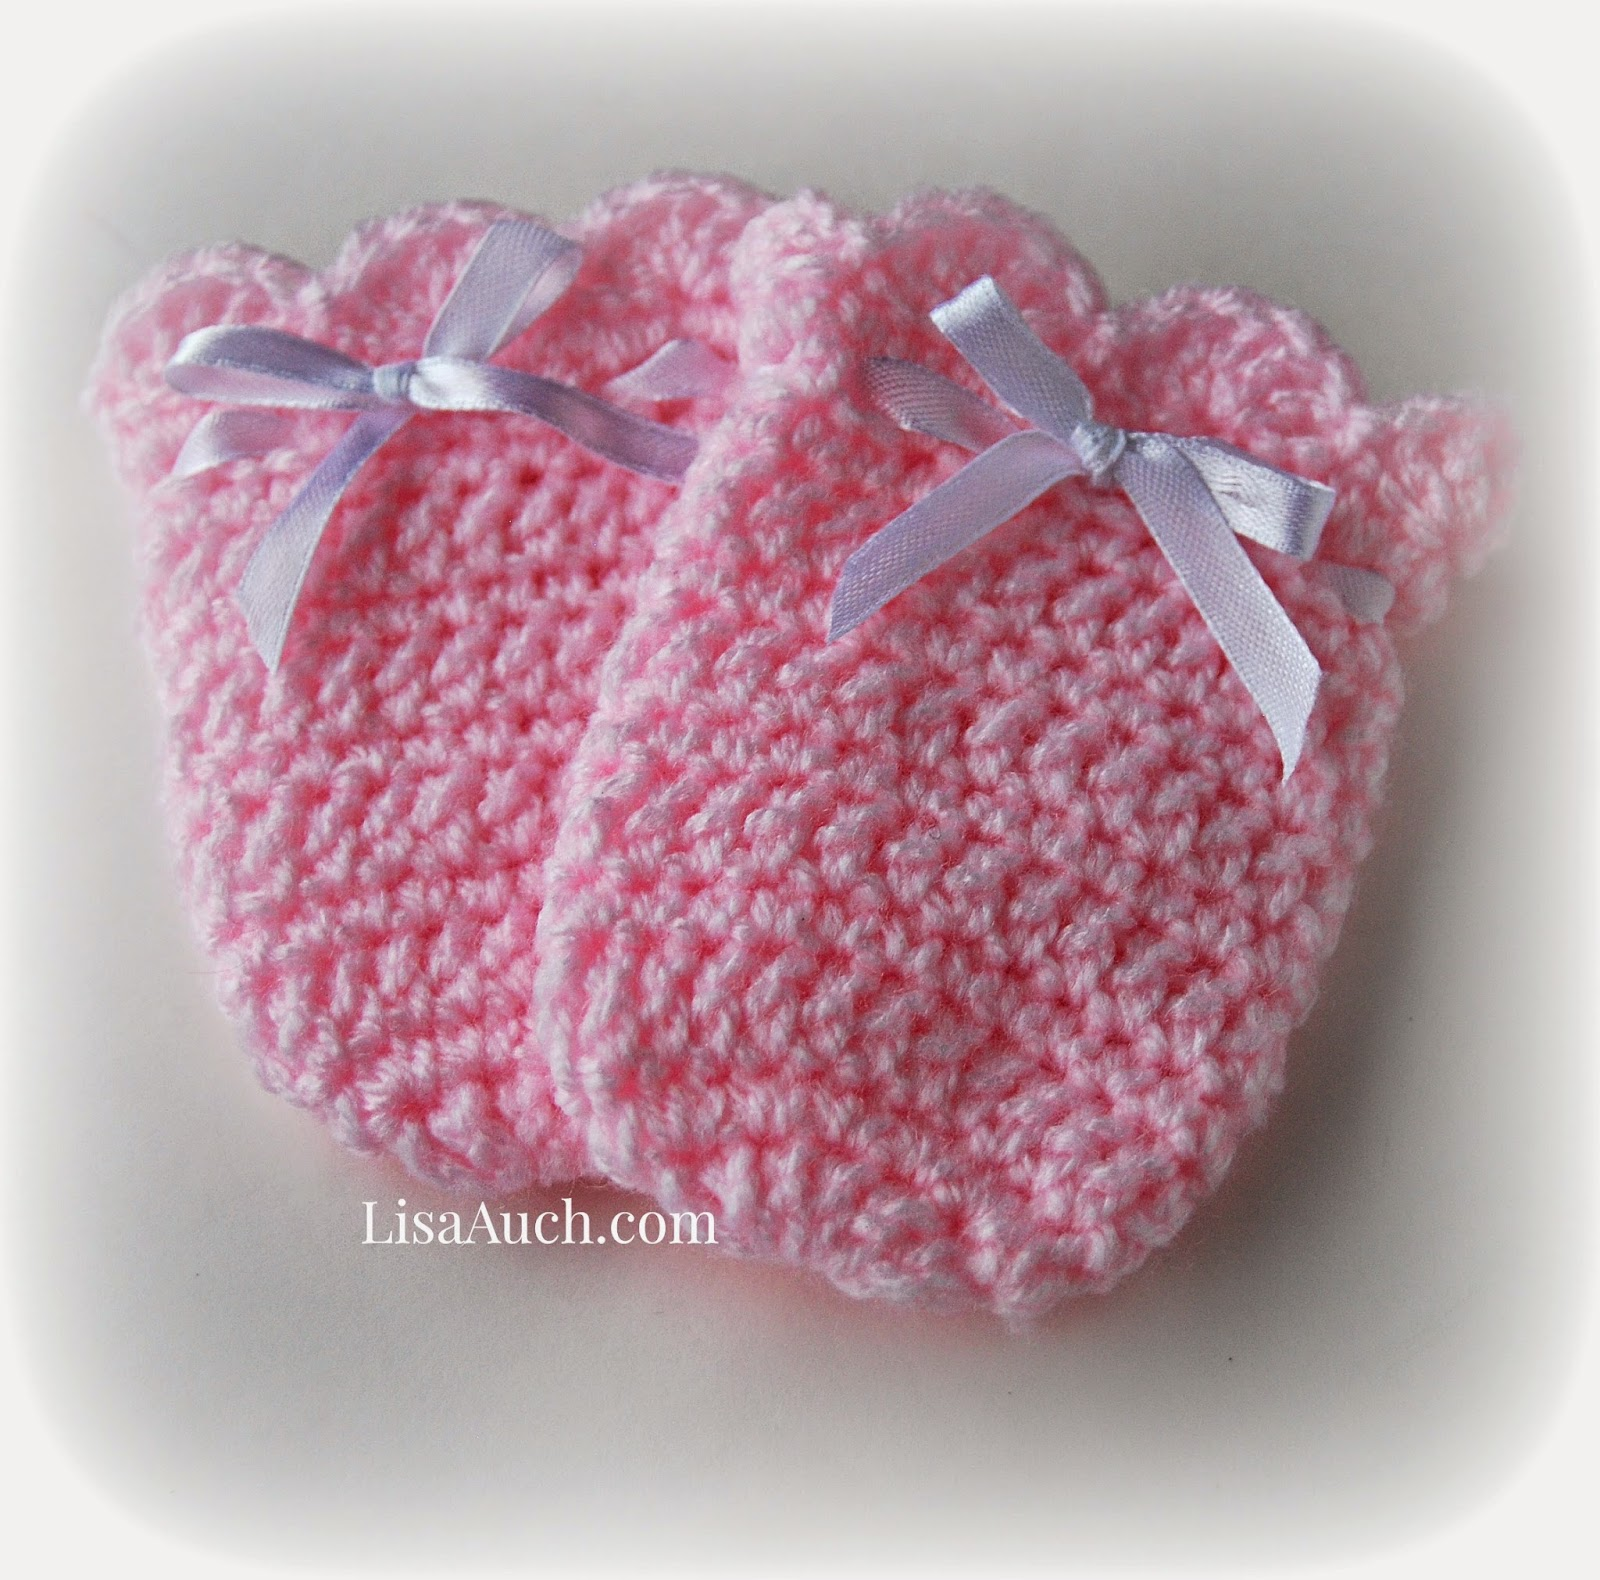 Crochet Baby Mittens Vintage Swing Crochet Baby Mitts A Free